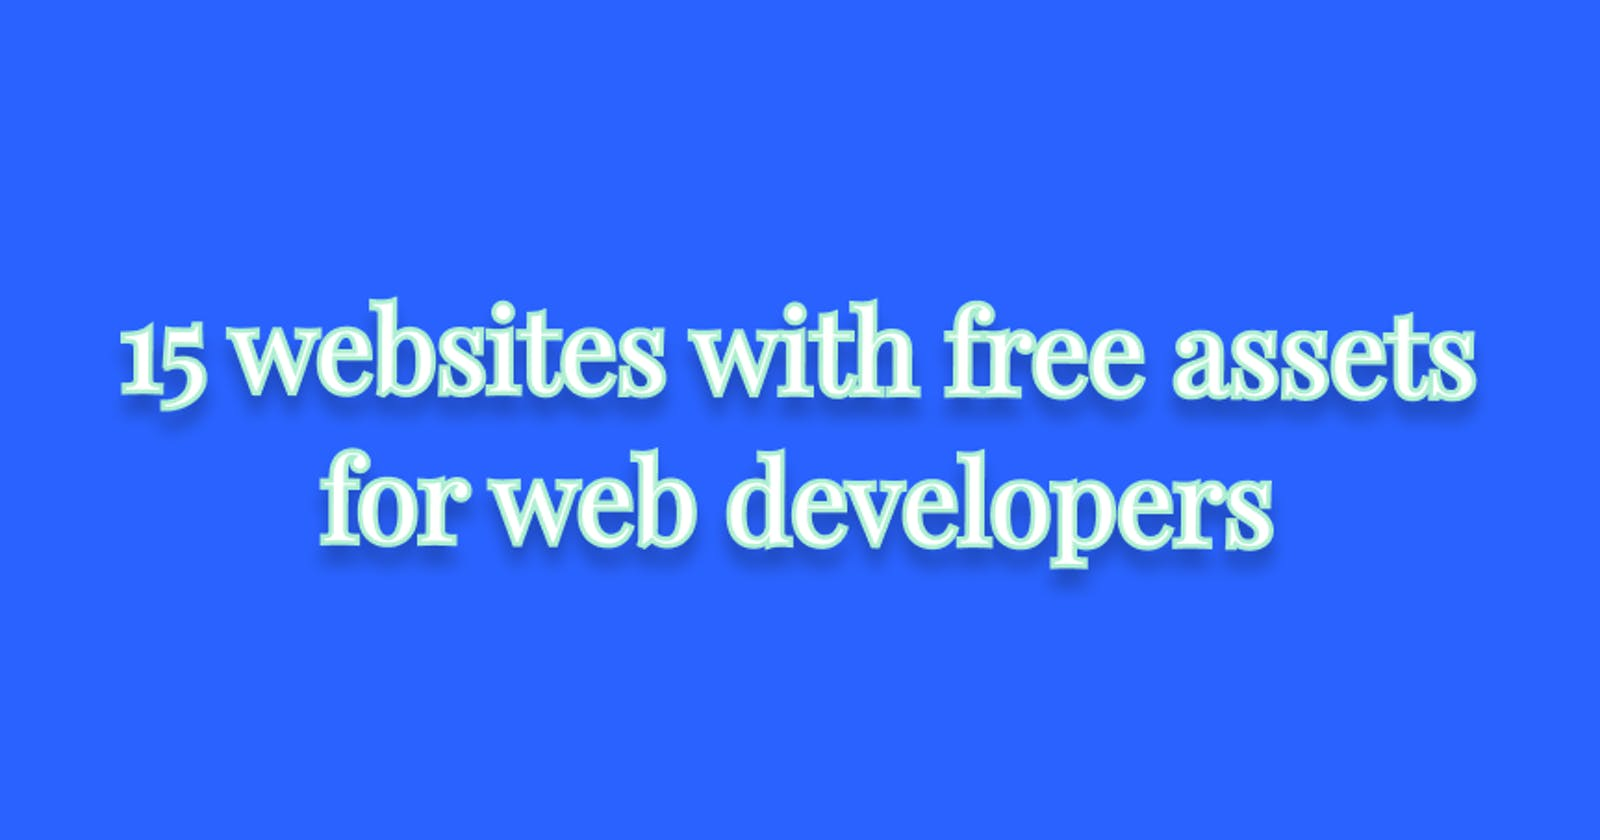 15 websites with free assets for web developers